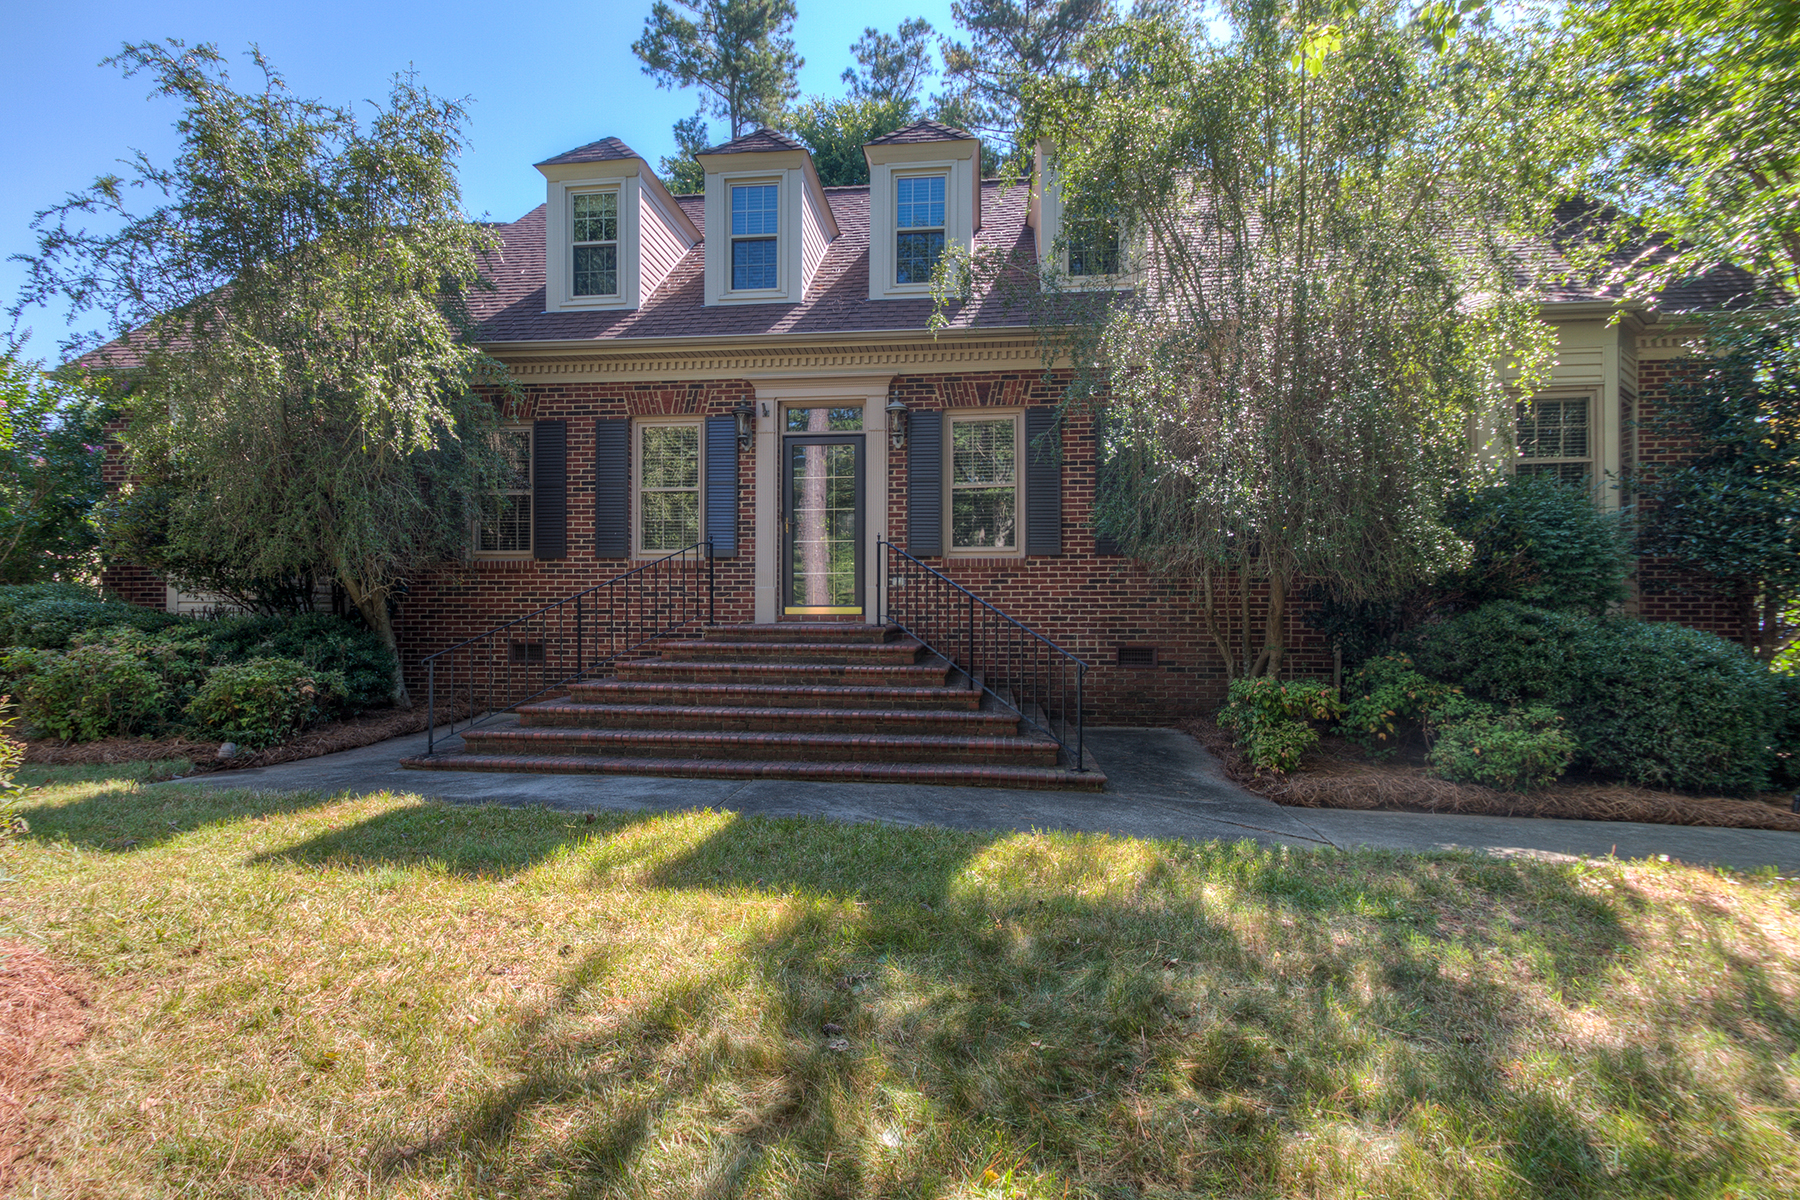 Single Family Home for Sale at 7955 Buckfield Pl , Charlotte, NC 28277 7955 Buckfield Pl Charlotte, North Carolina, 28277 United States